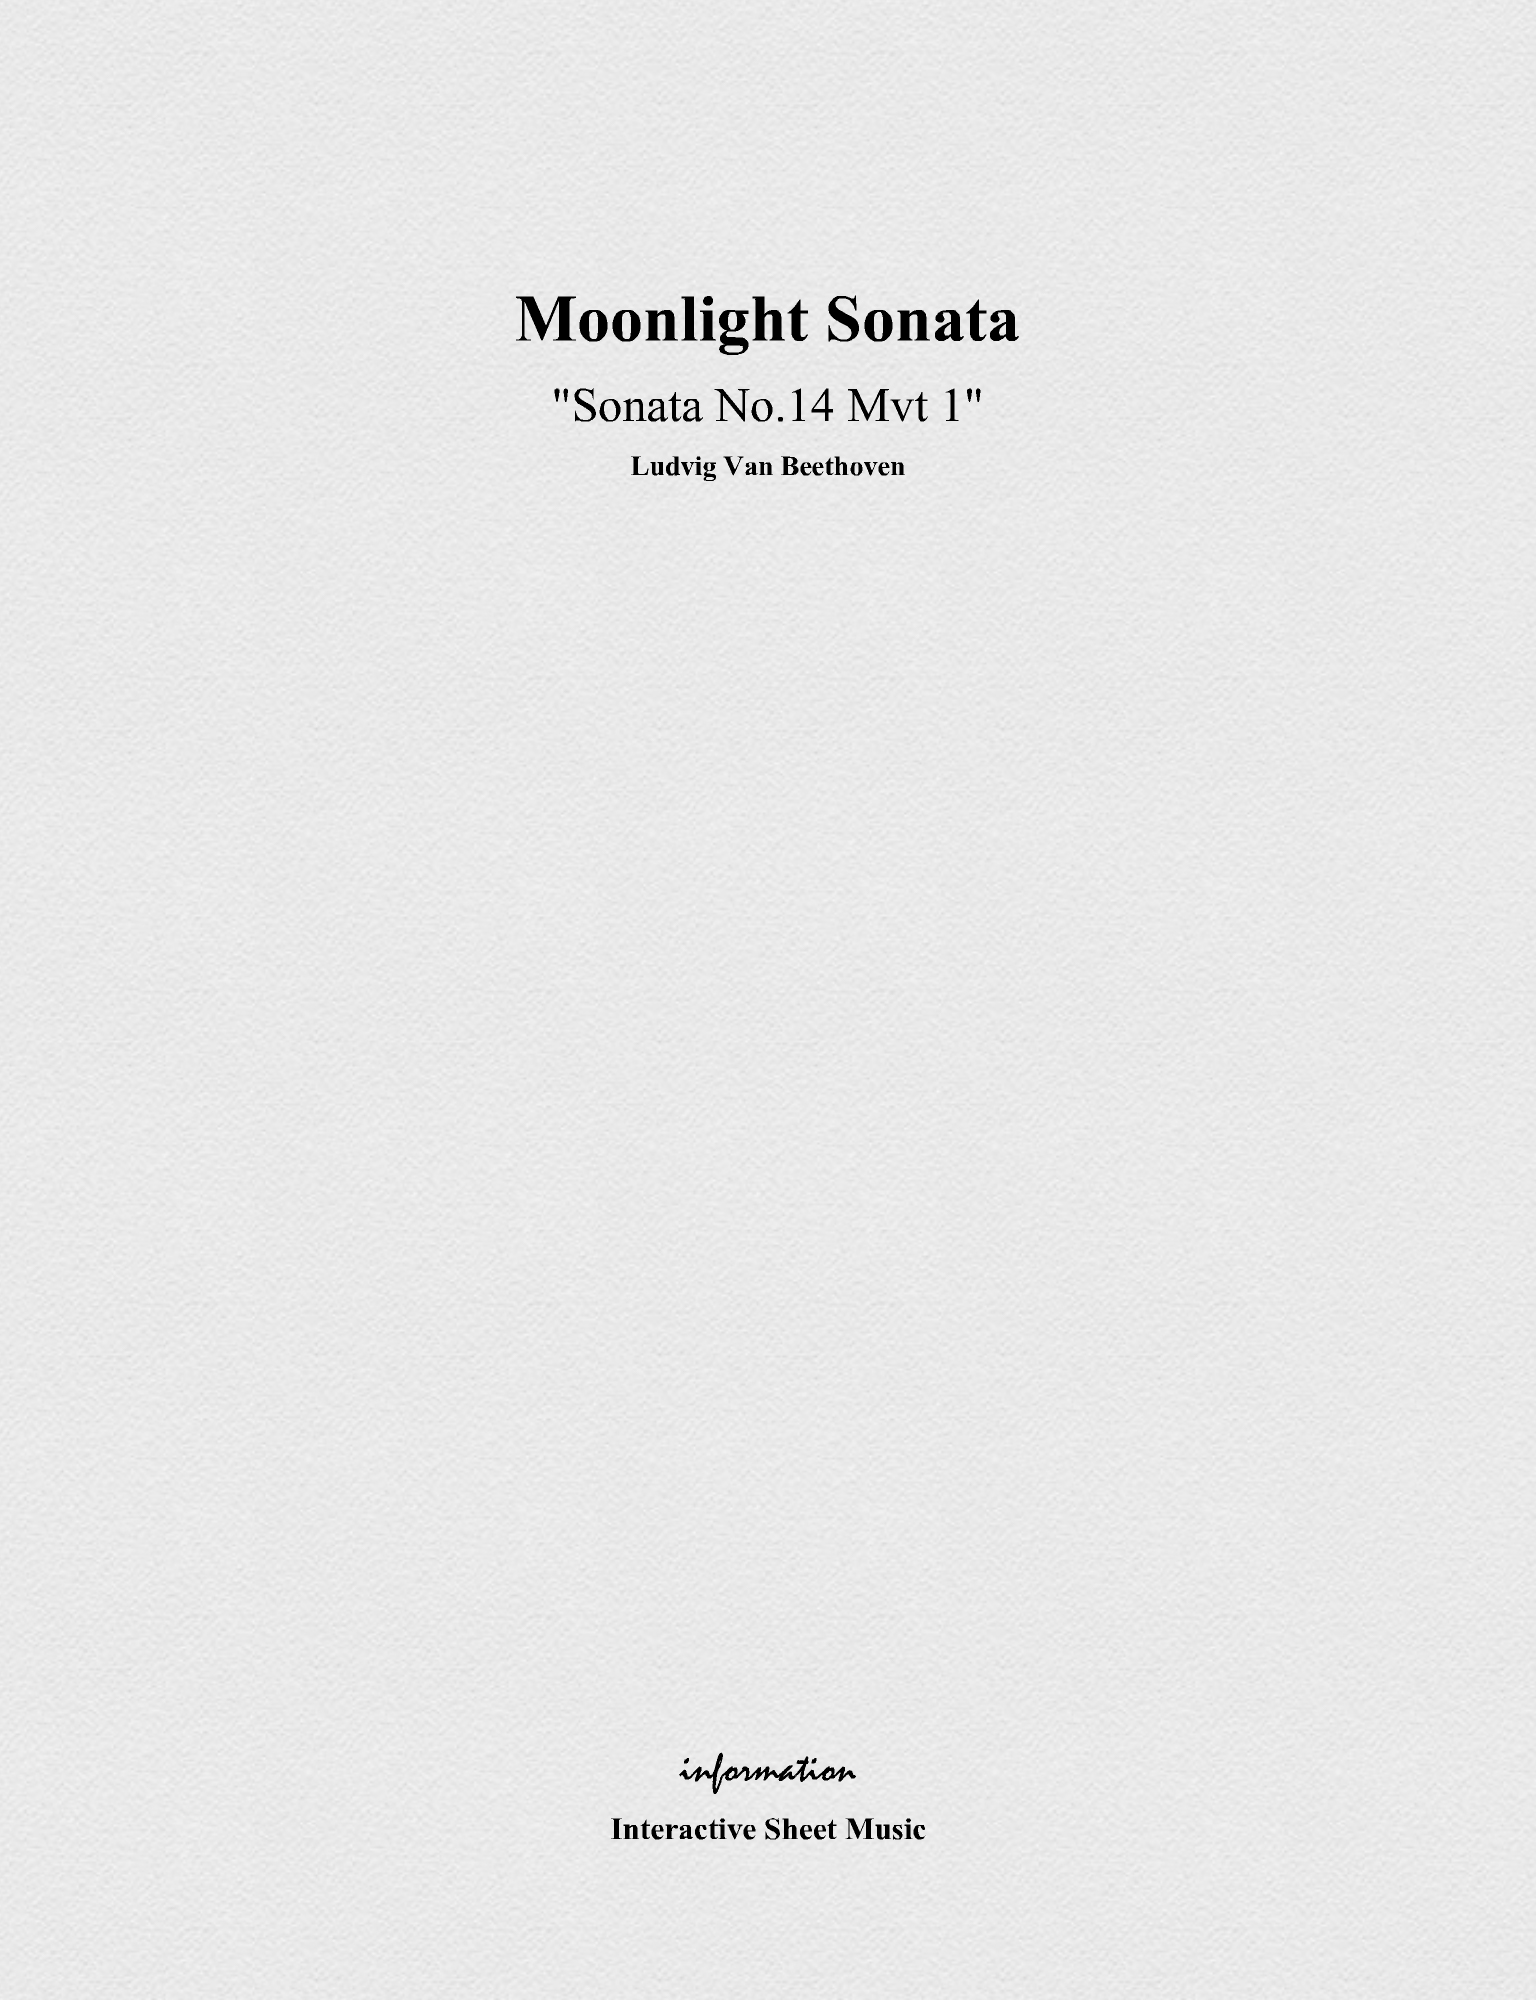 Moonlight Sonata (Songbook Cover)